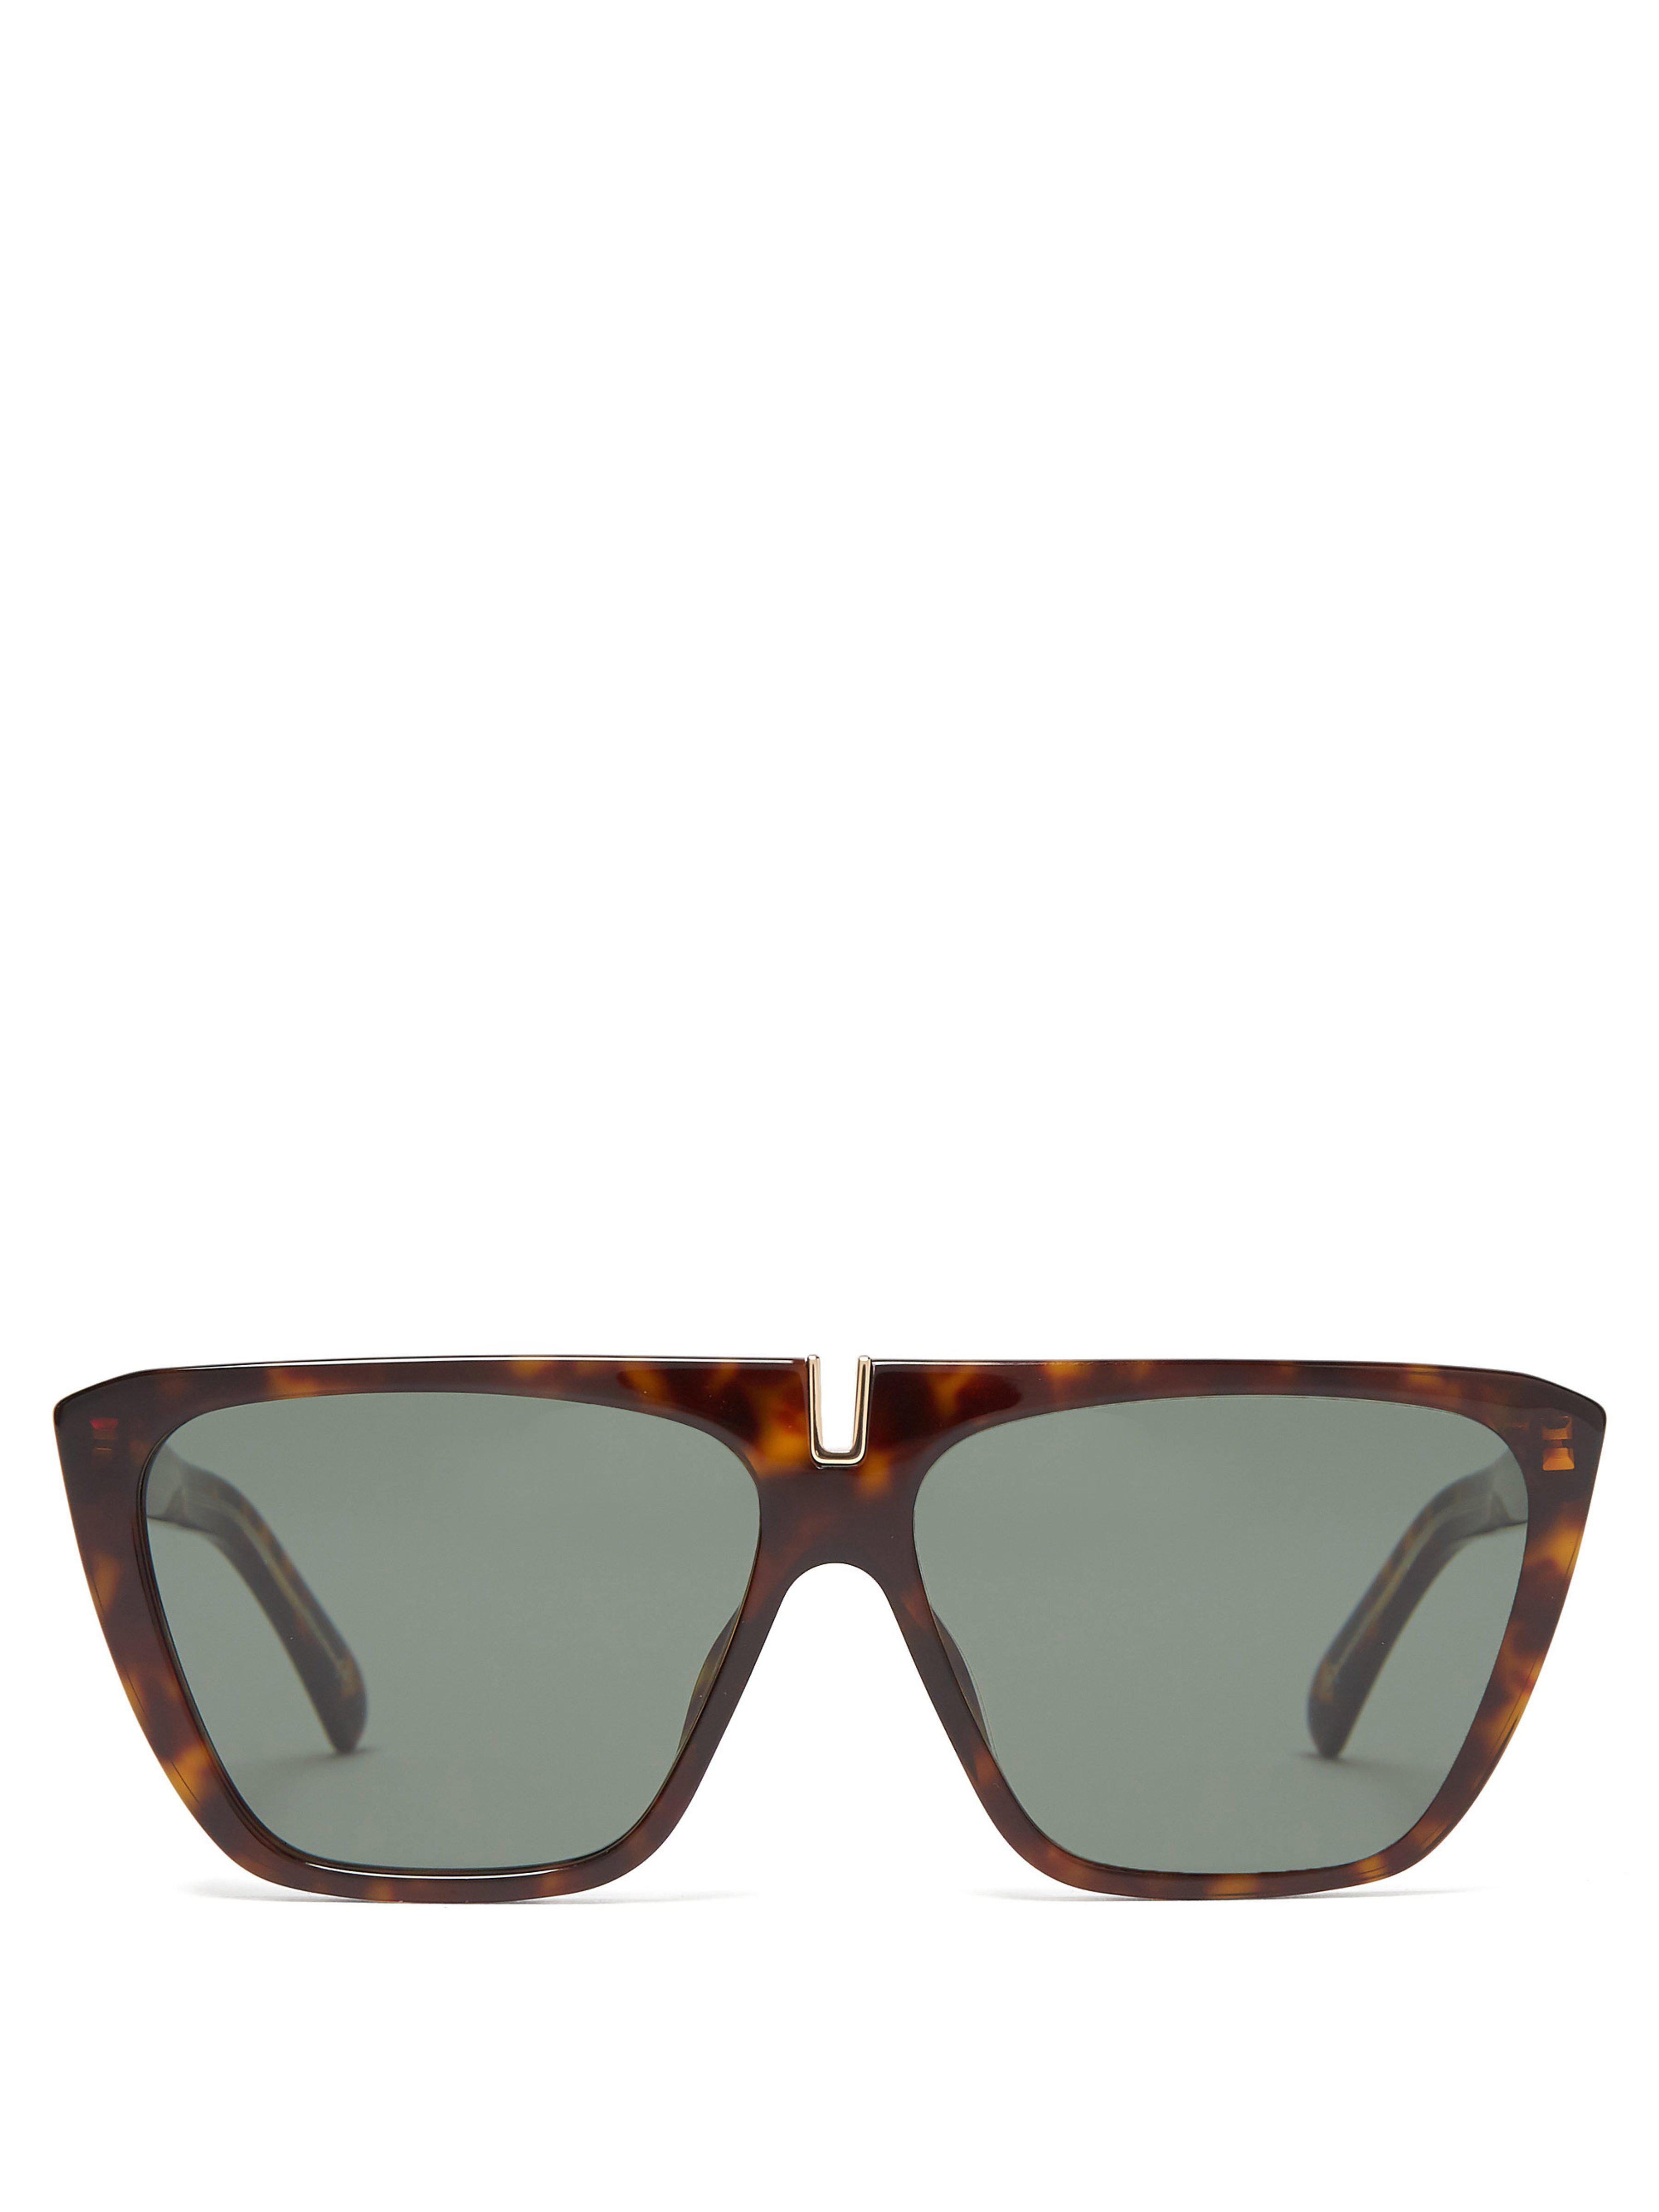 211e8c1859 Givenchy. Women s Flat Top Acetate Sunglasses